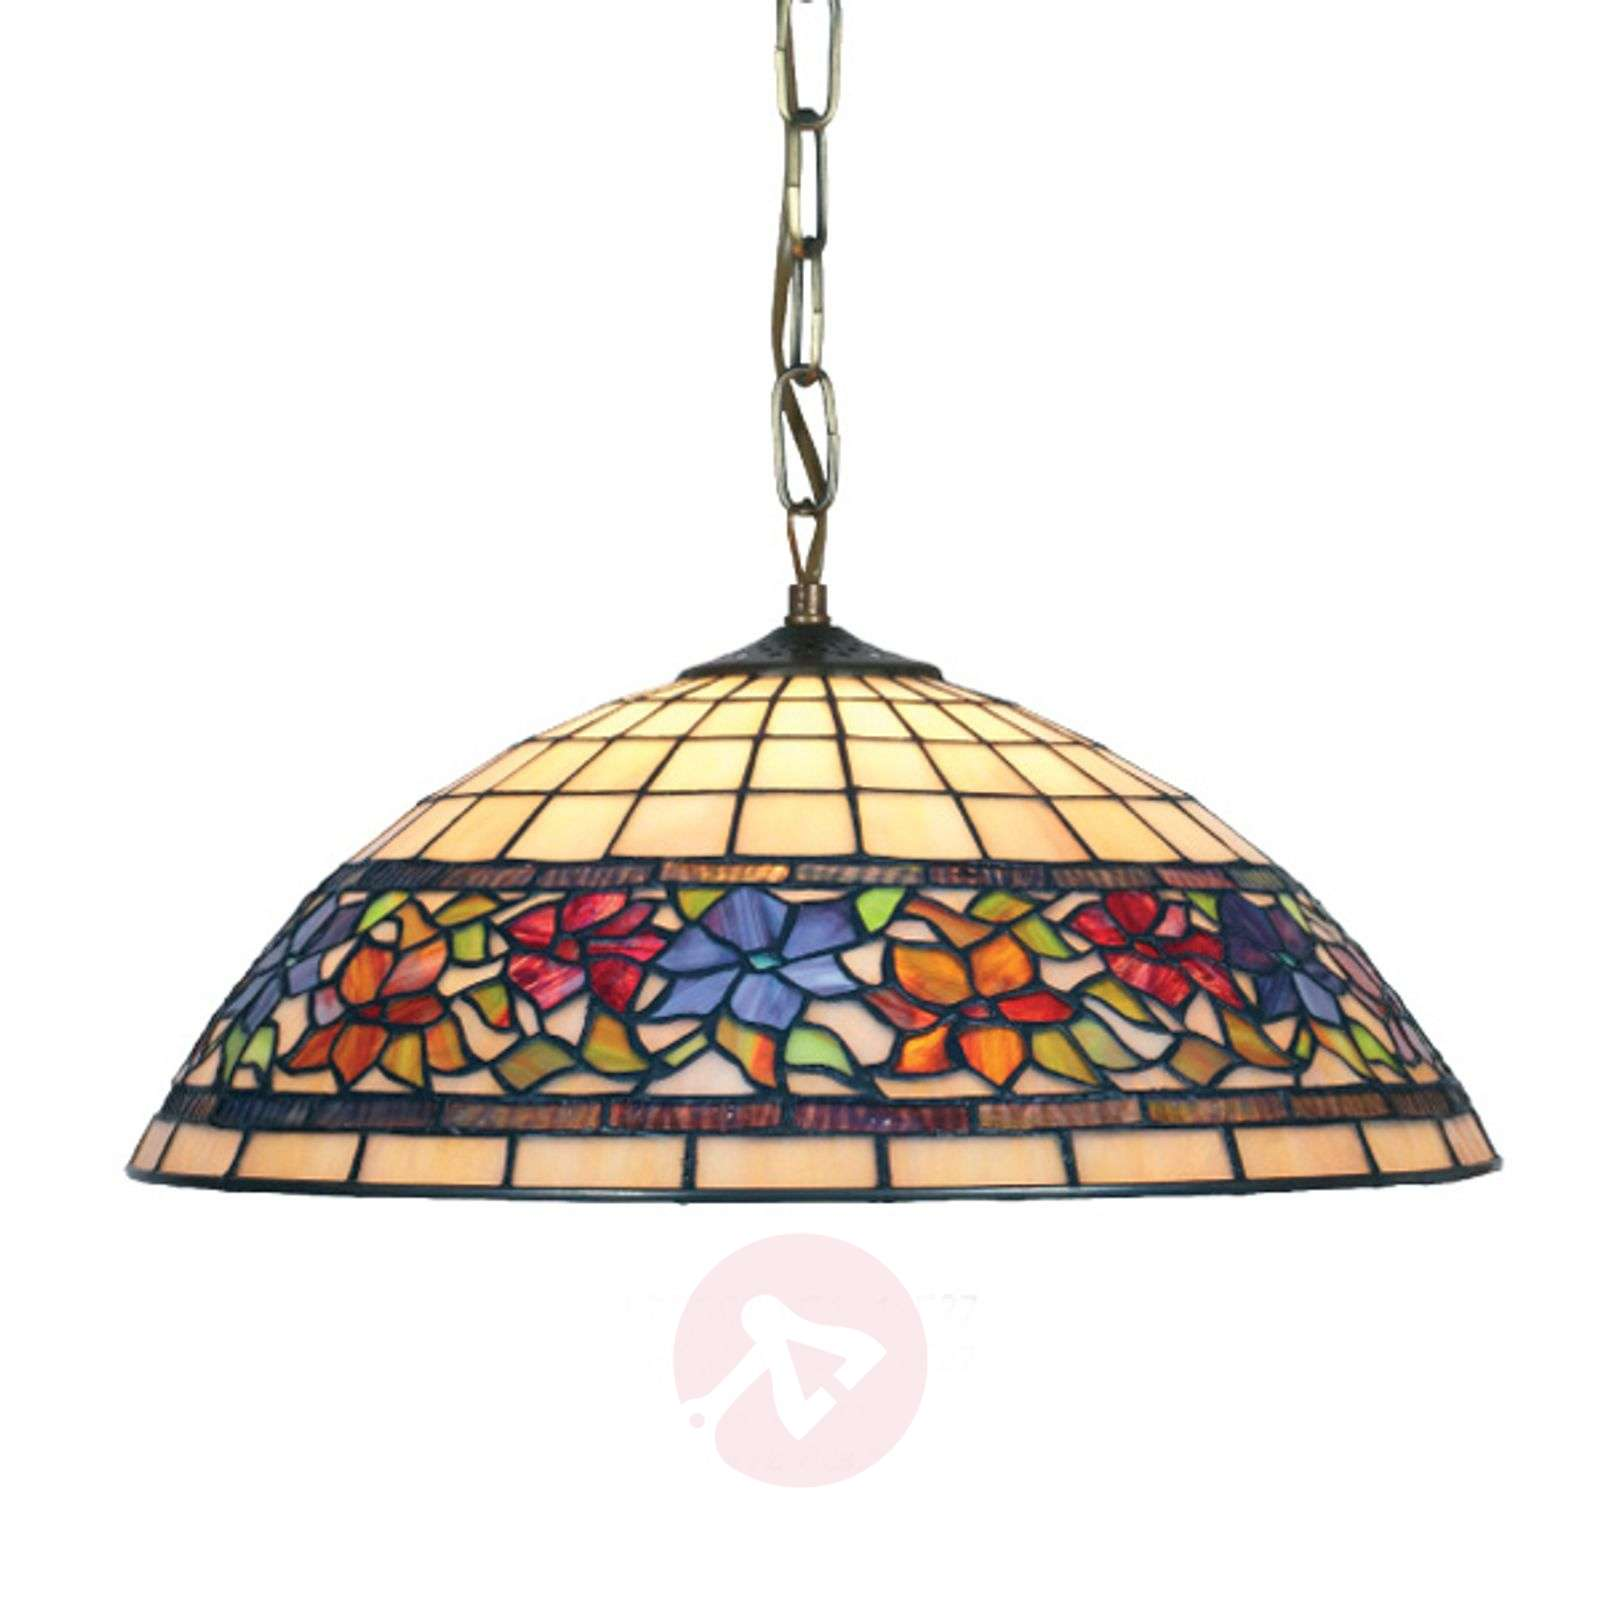 Hanglamp FLORA in Tiffany-stijl-1032126X-01